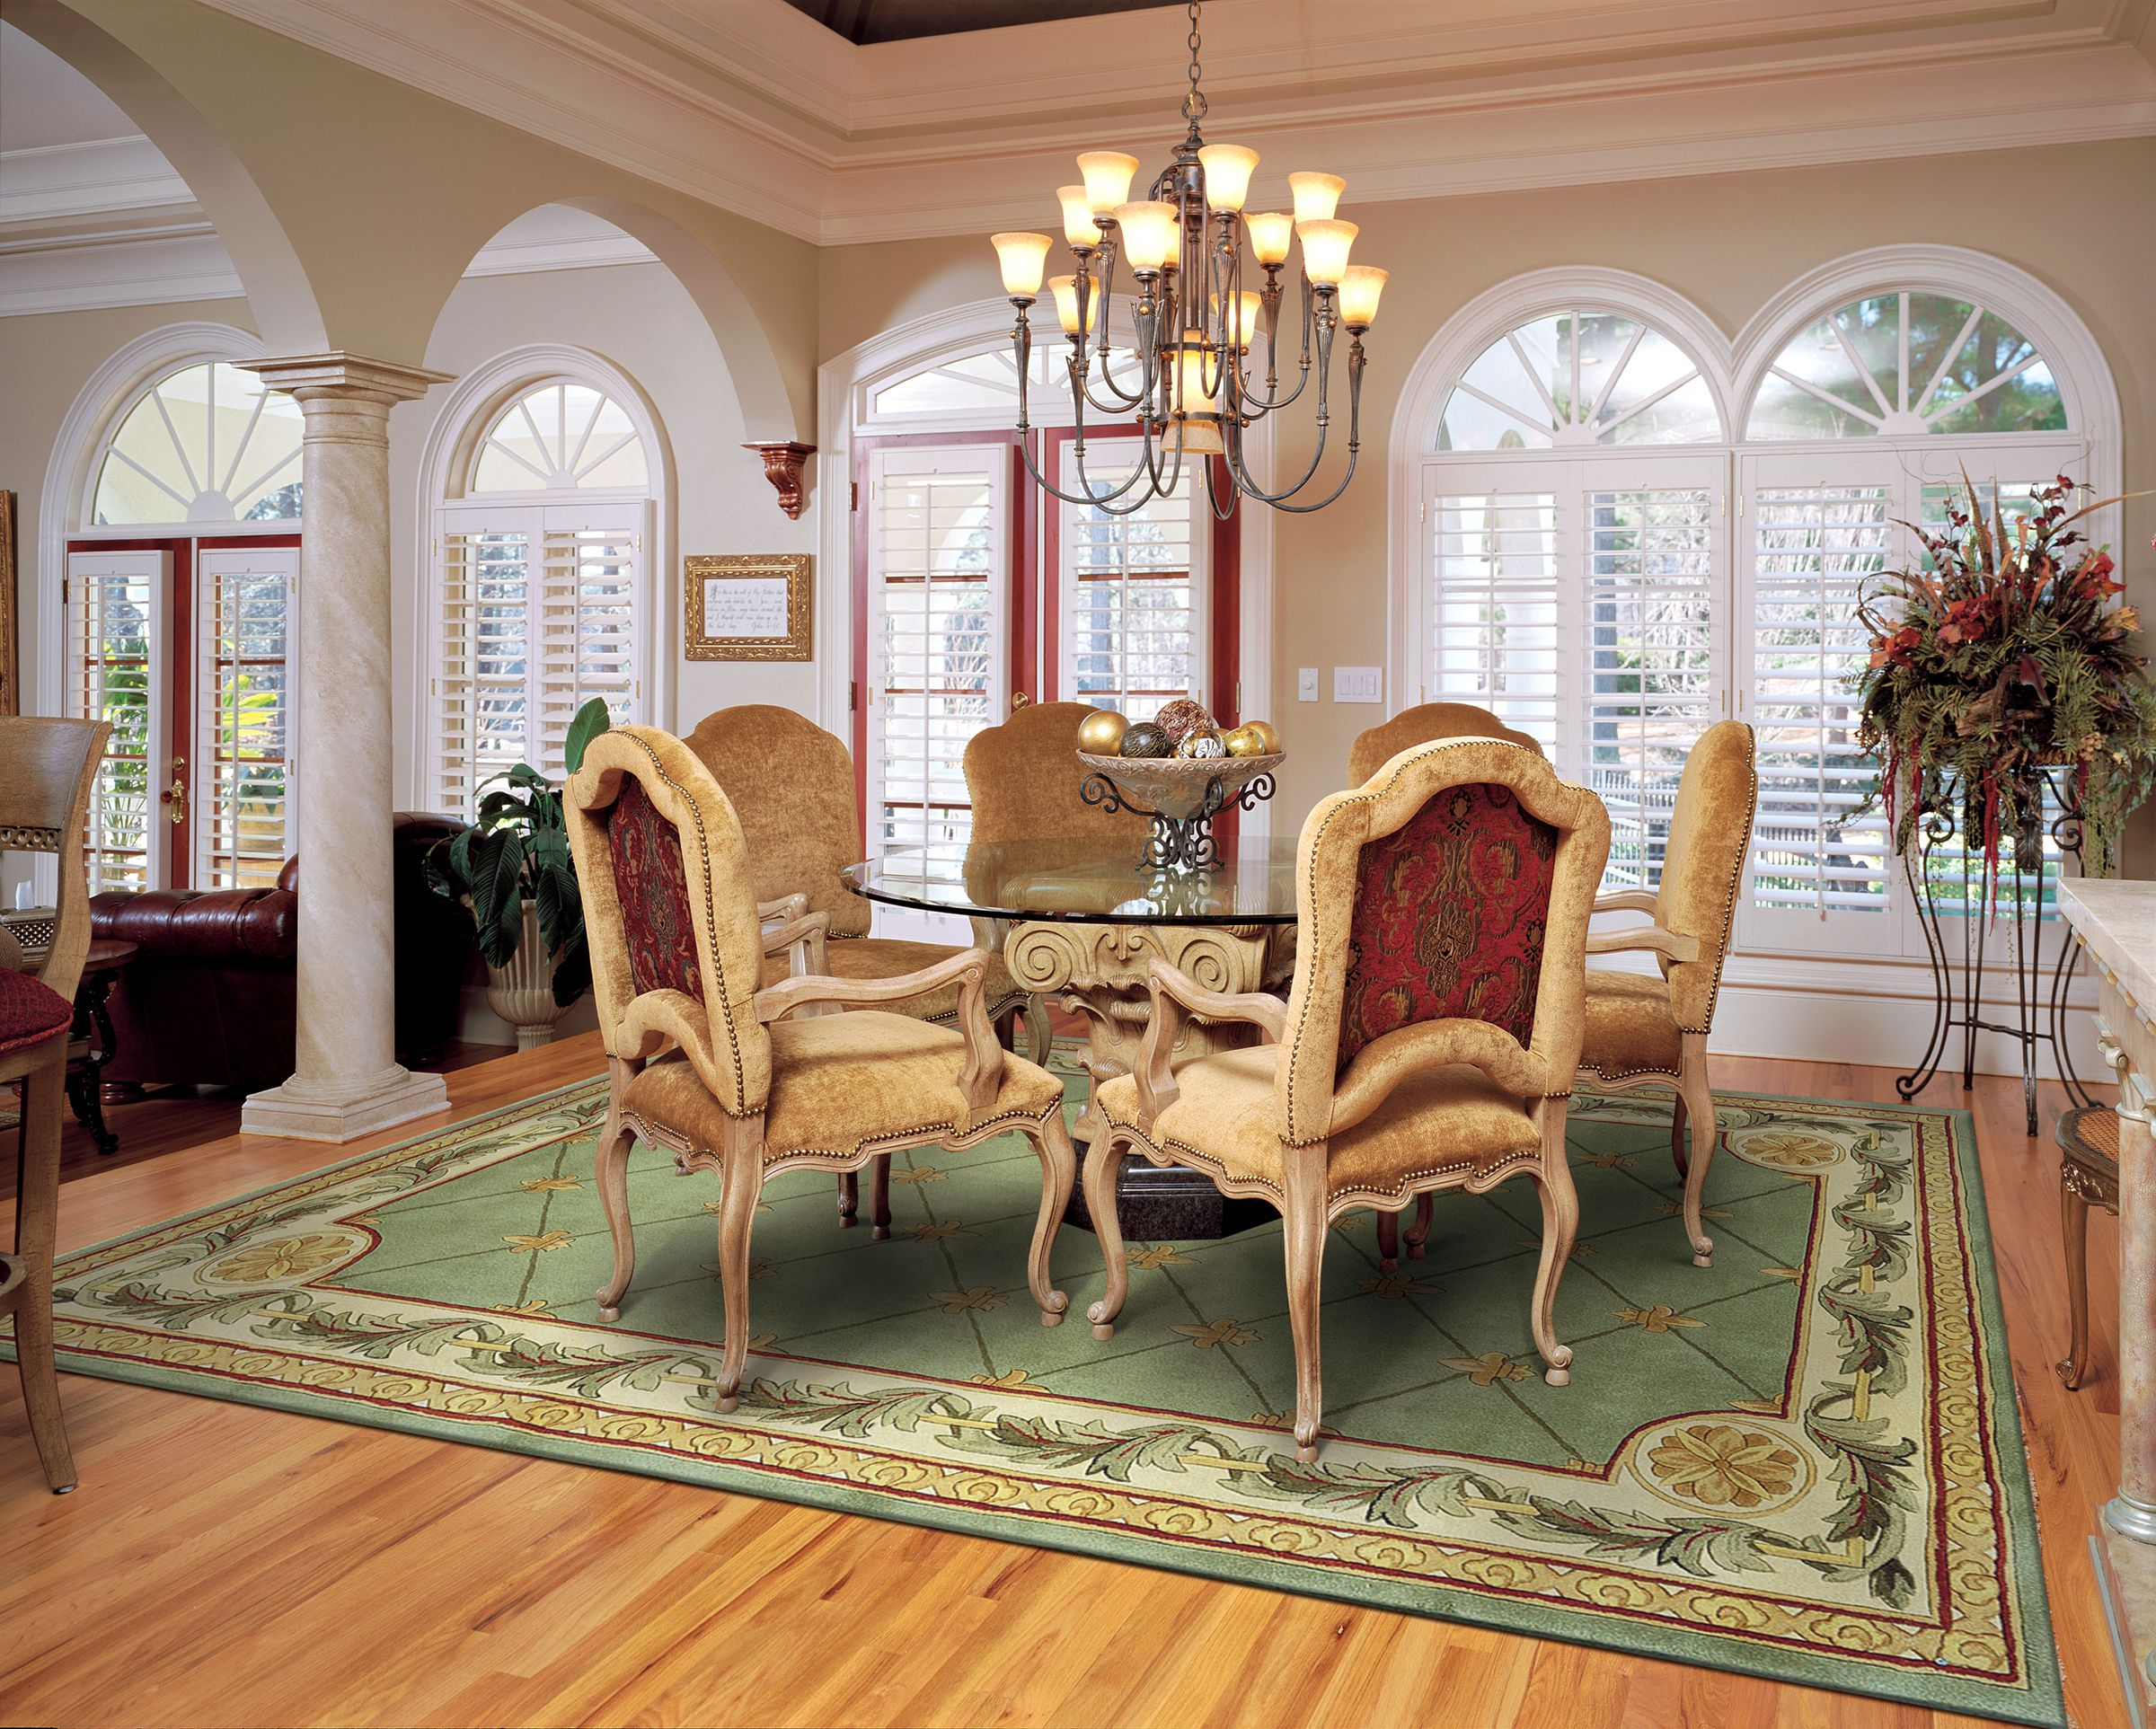 Awesome Dining Room Rugs in Classic Dining Room with Round Glass Top Table and Elegant Chairs